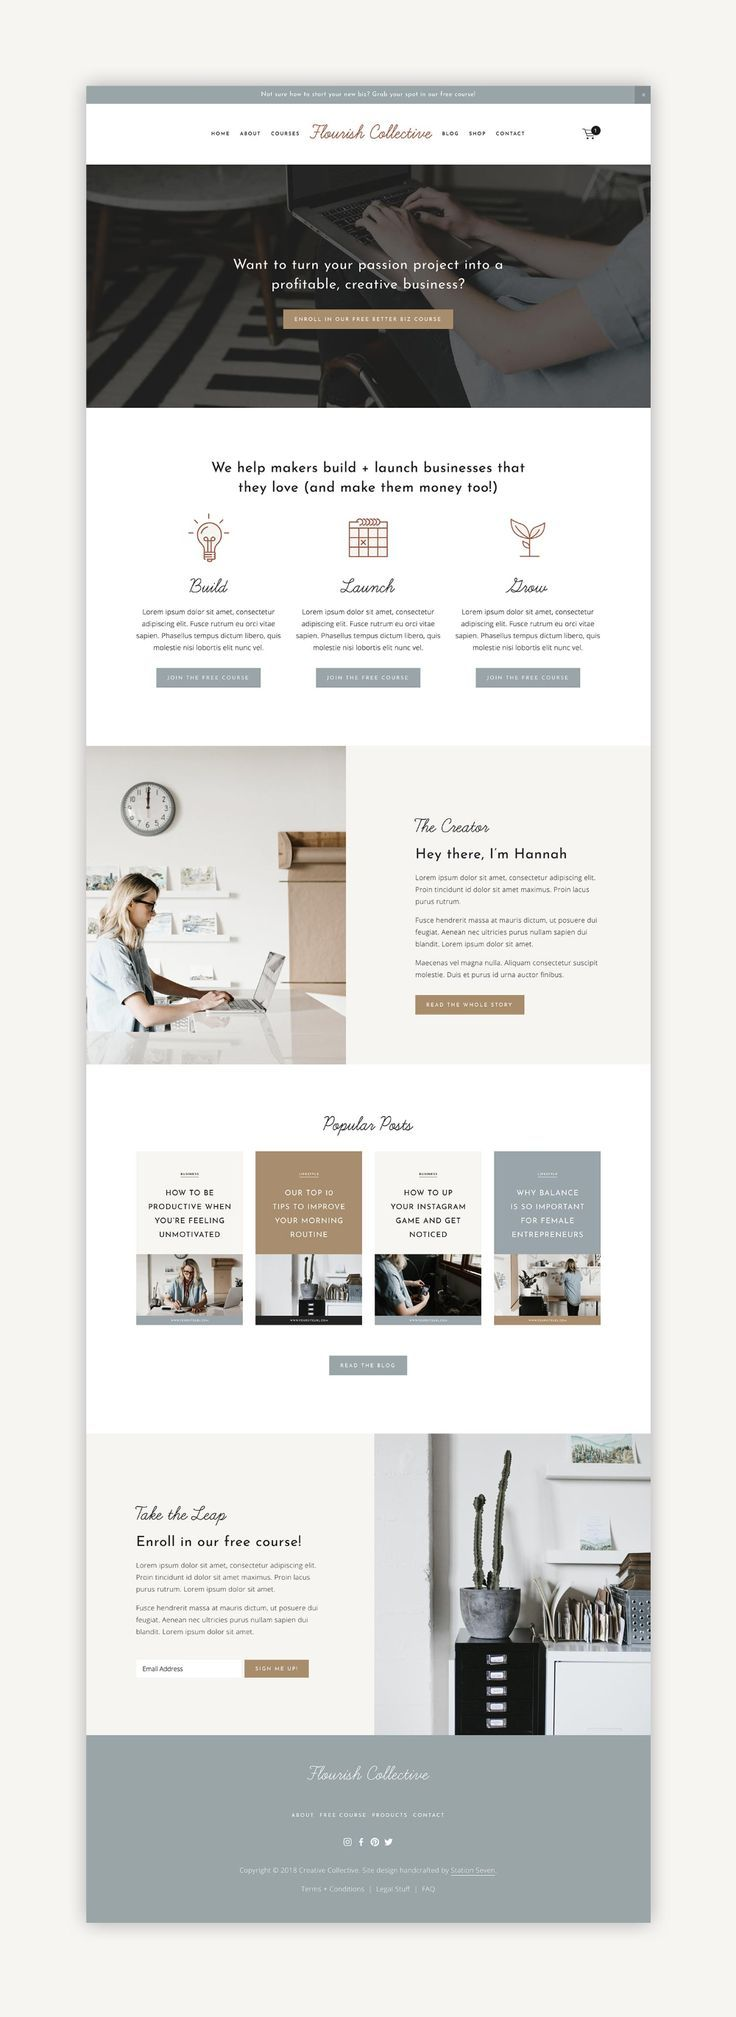 Flourish Squarespace Kit — Station Seven: Squarespace Templates, WordPress Themes, and Free Re